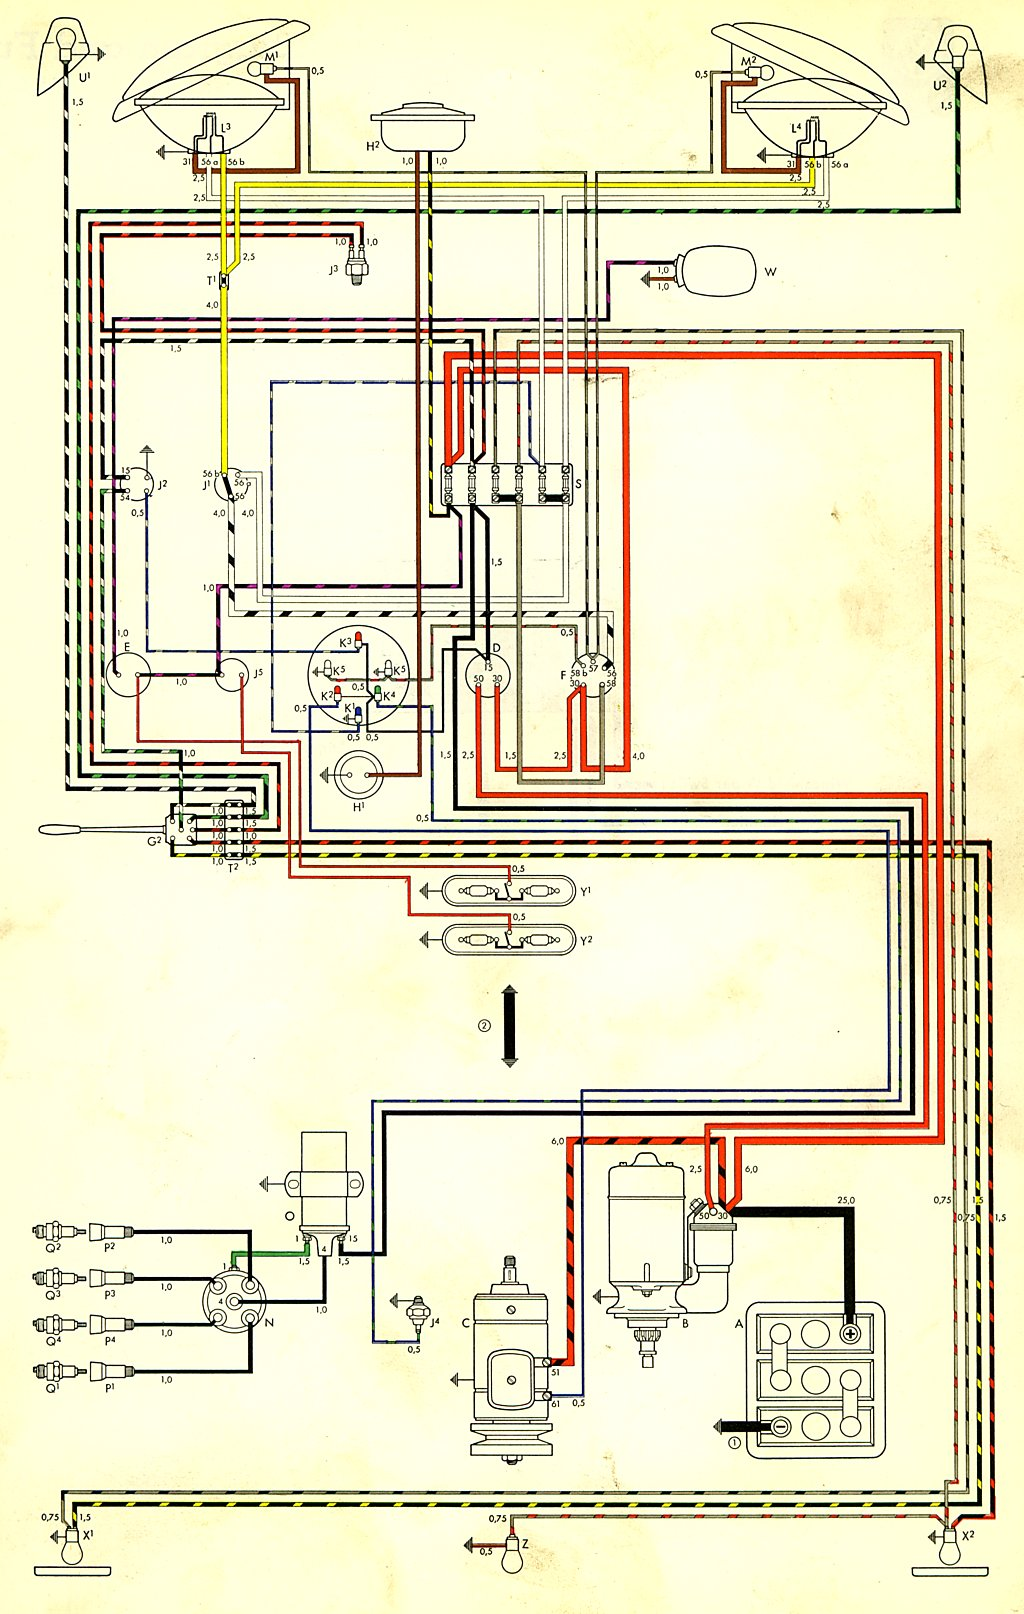 bus_59_USA 1959 bus wiring diagram (usa) thegoldenbug com 1963 vw wiring diagram at alyssarenee.co